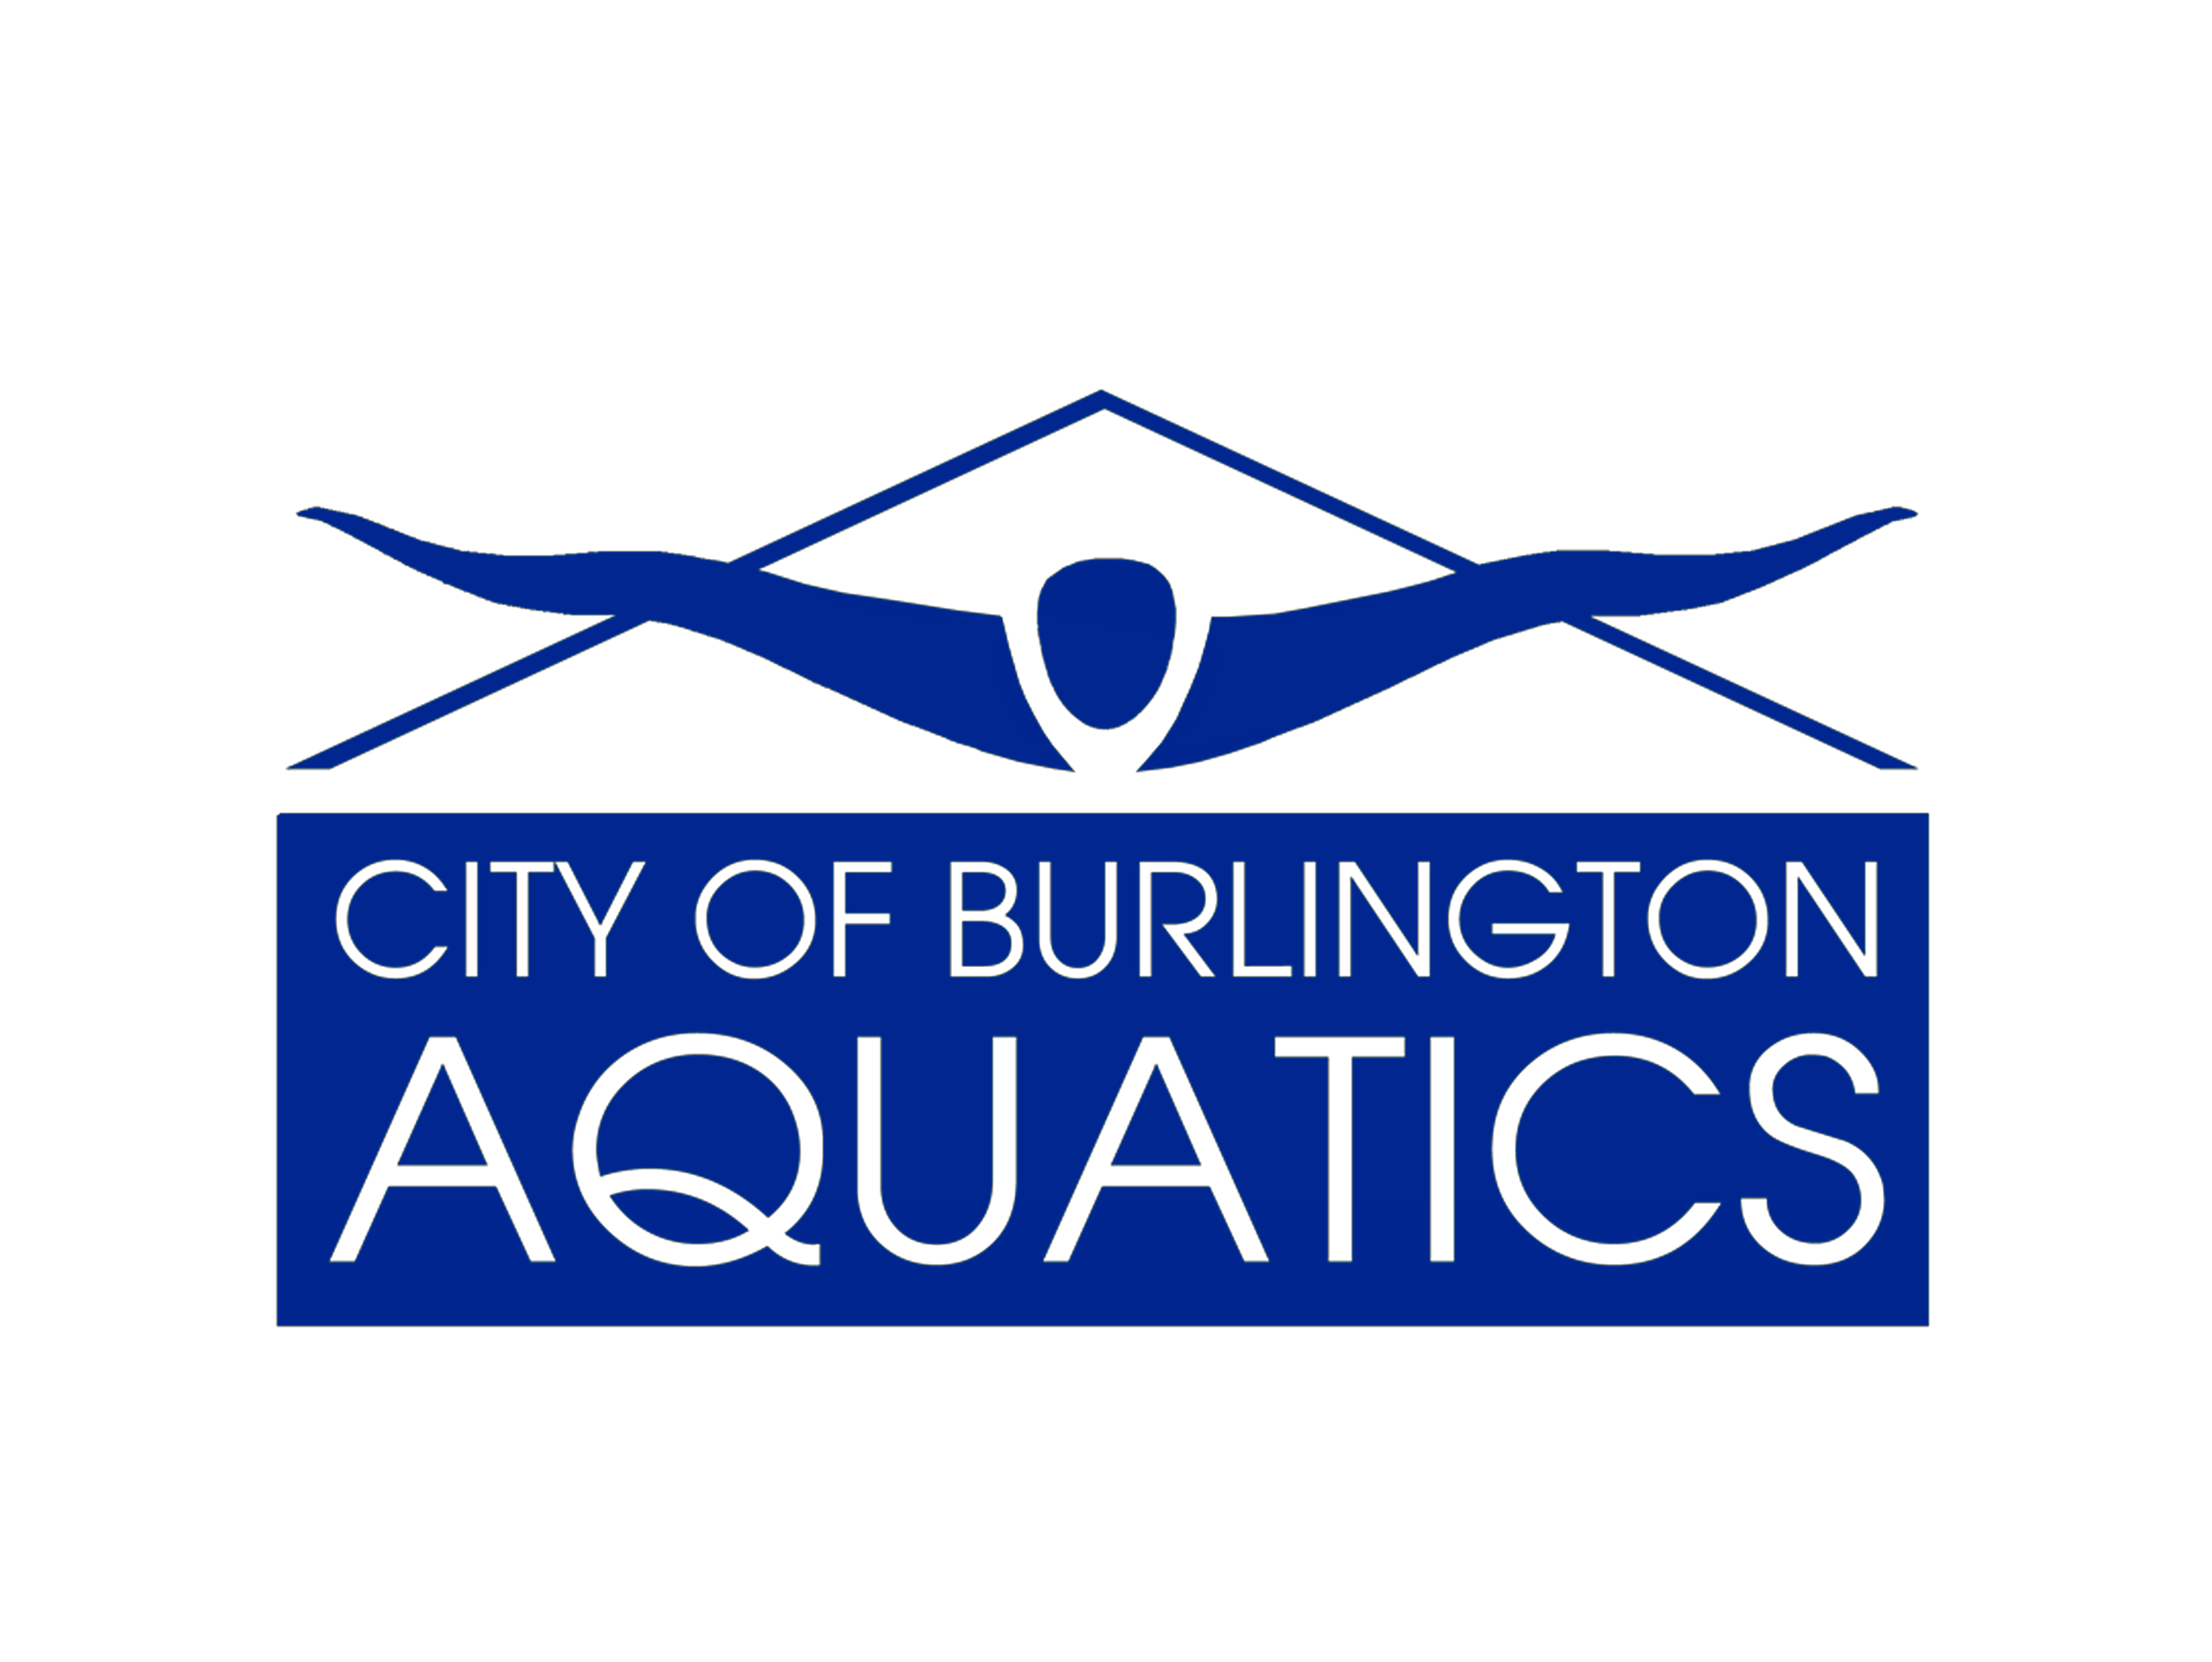 City of Burlington Aquatics Department Logo